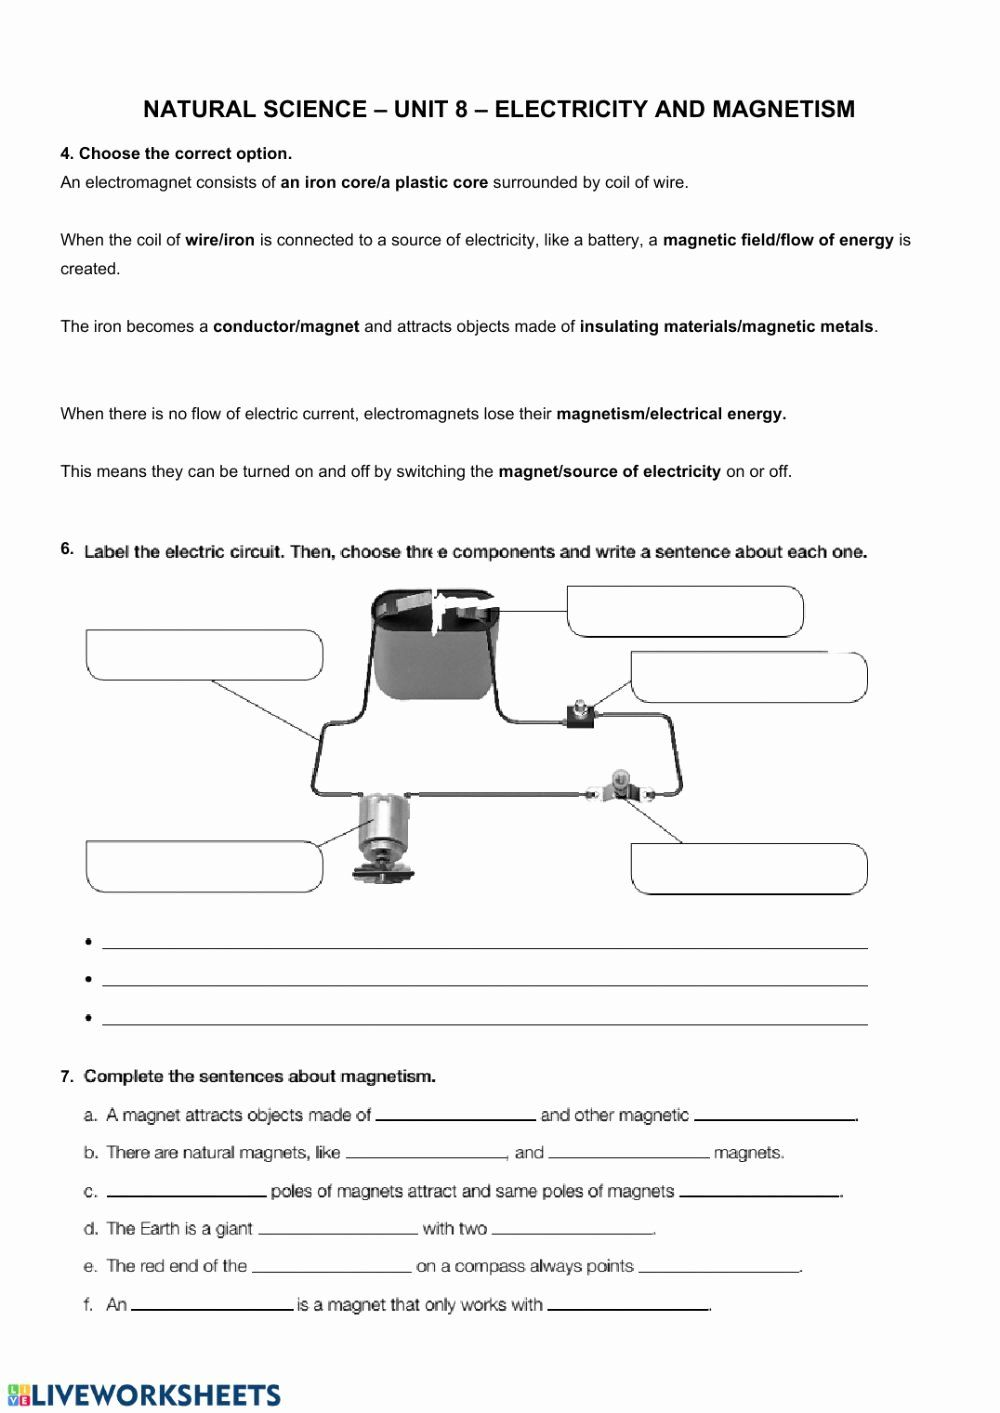 Pin On Worksheets Ideas Printable For Kids